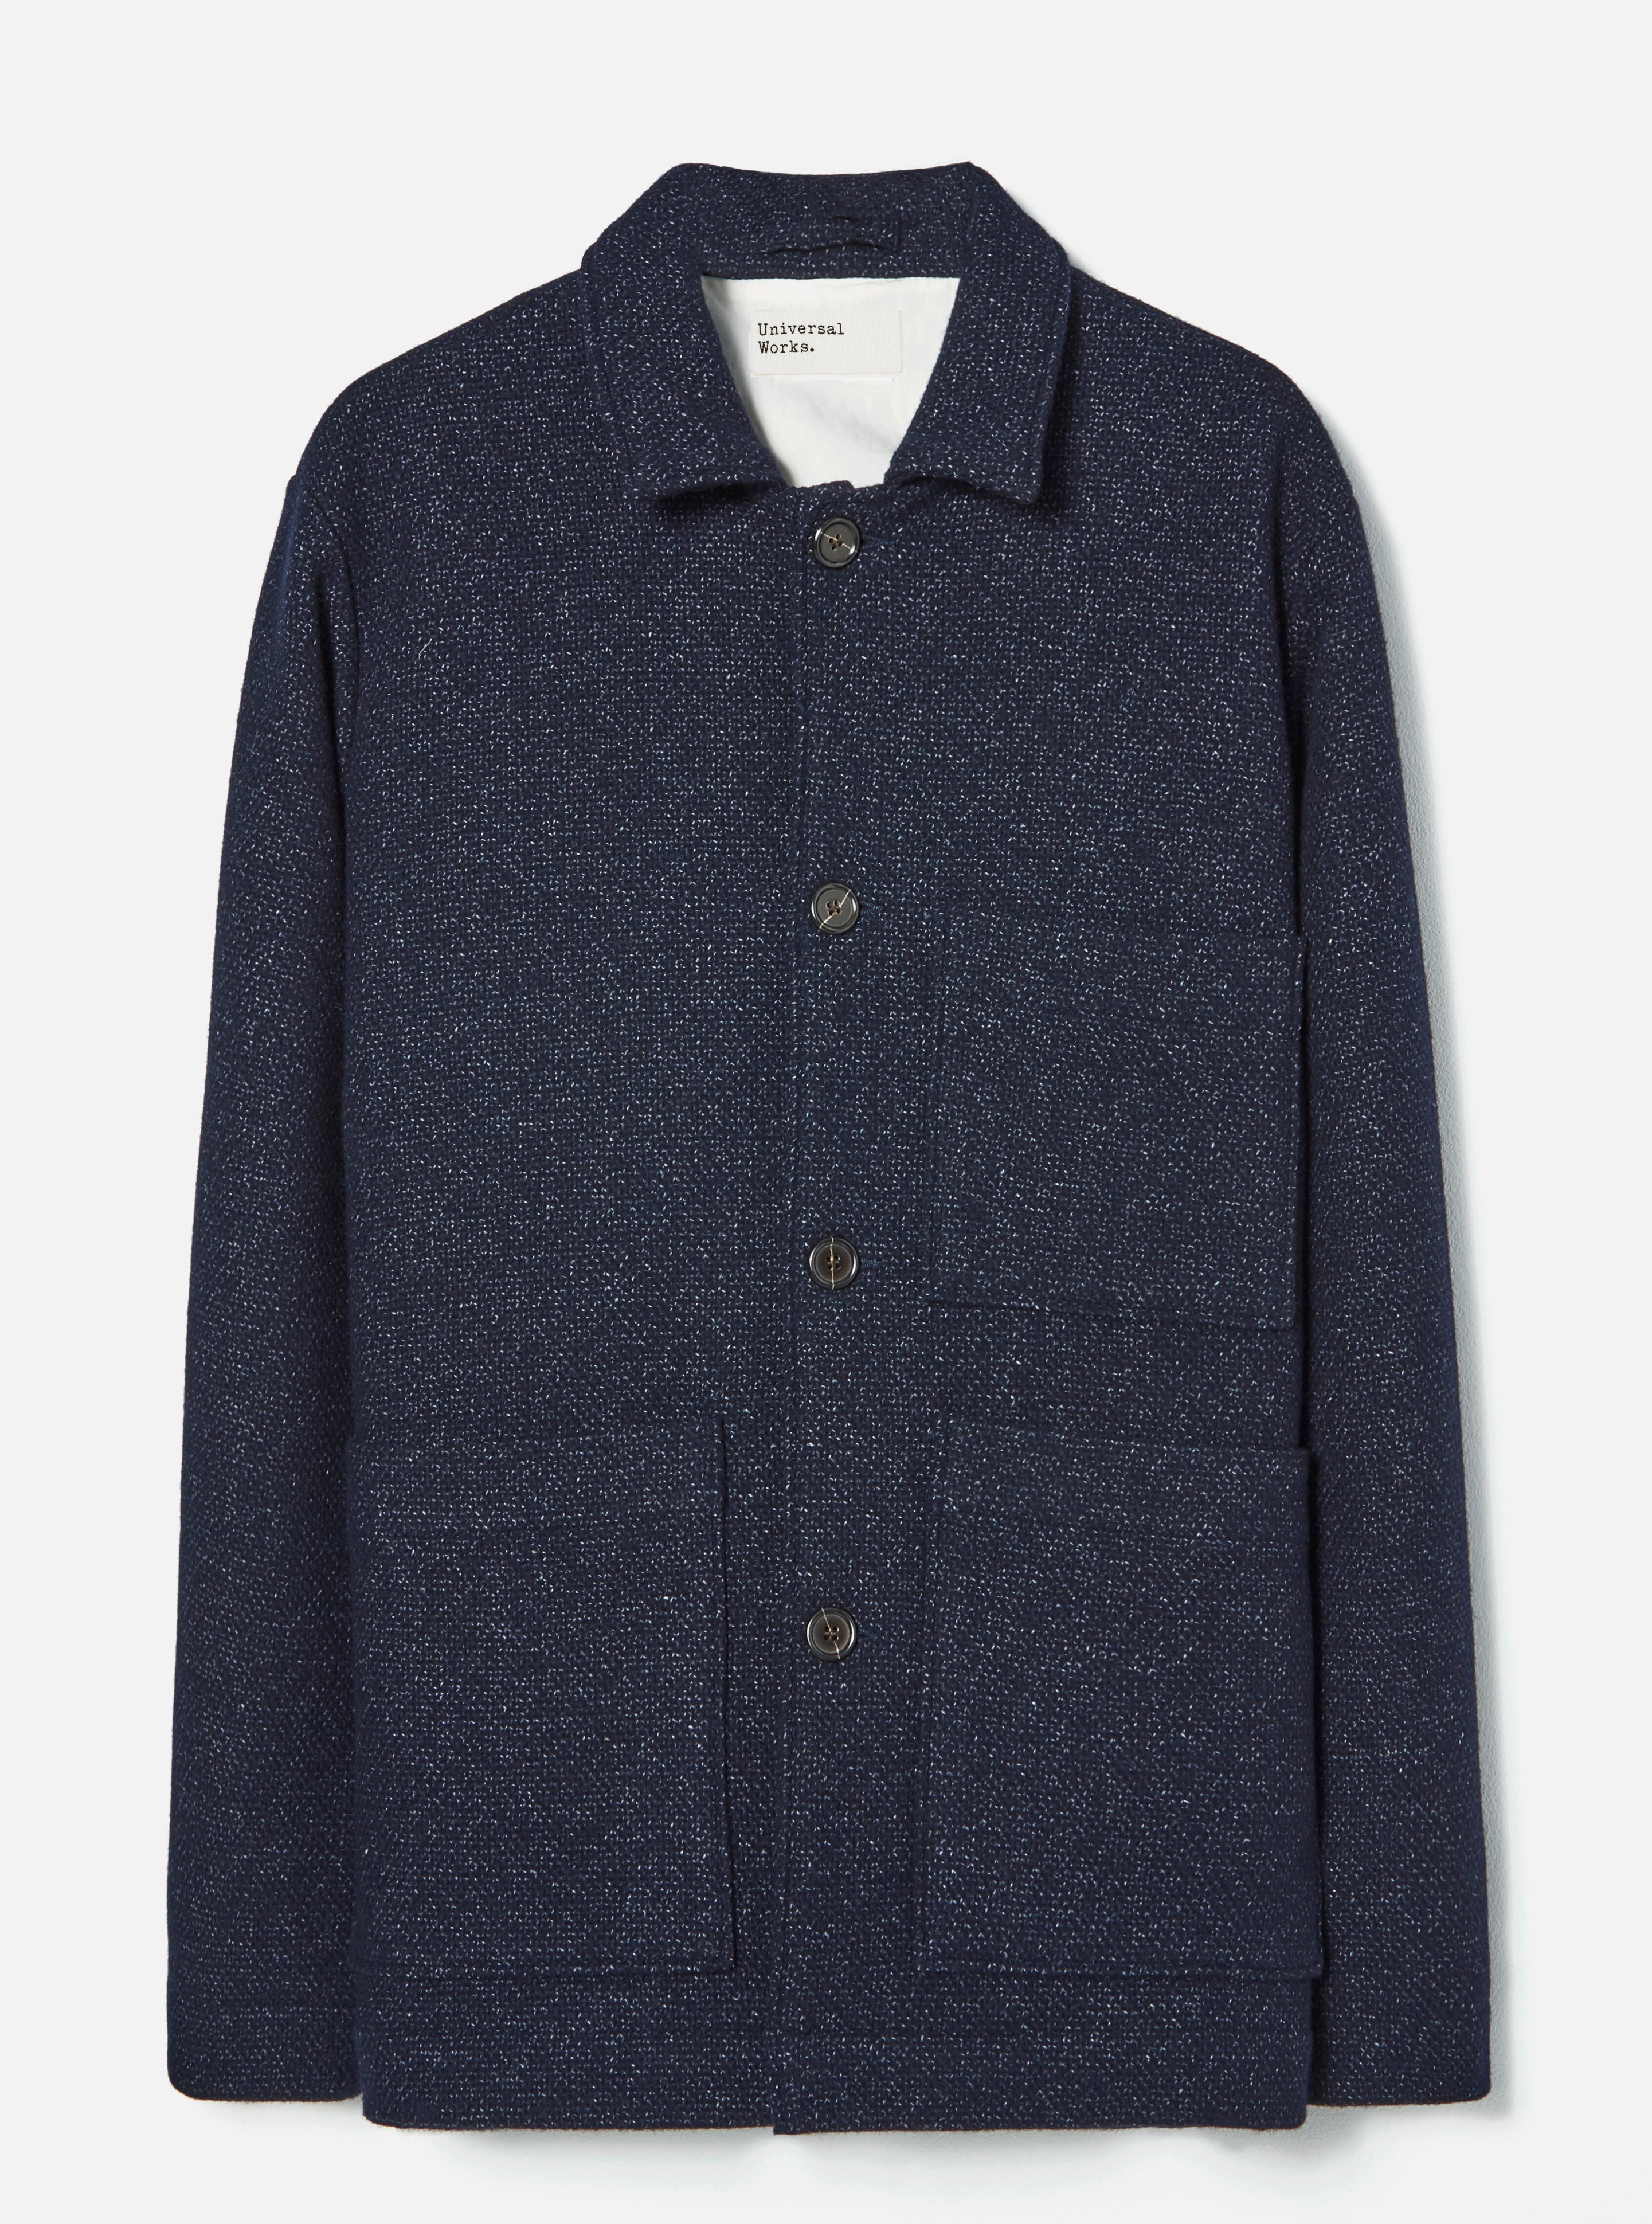 Universal Works Simple Bakers Jacket in Navy Knit Woven